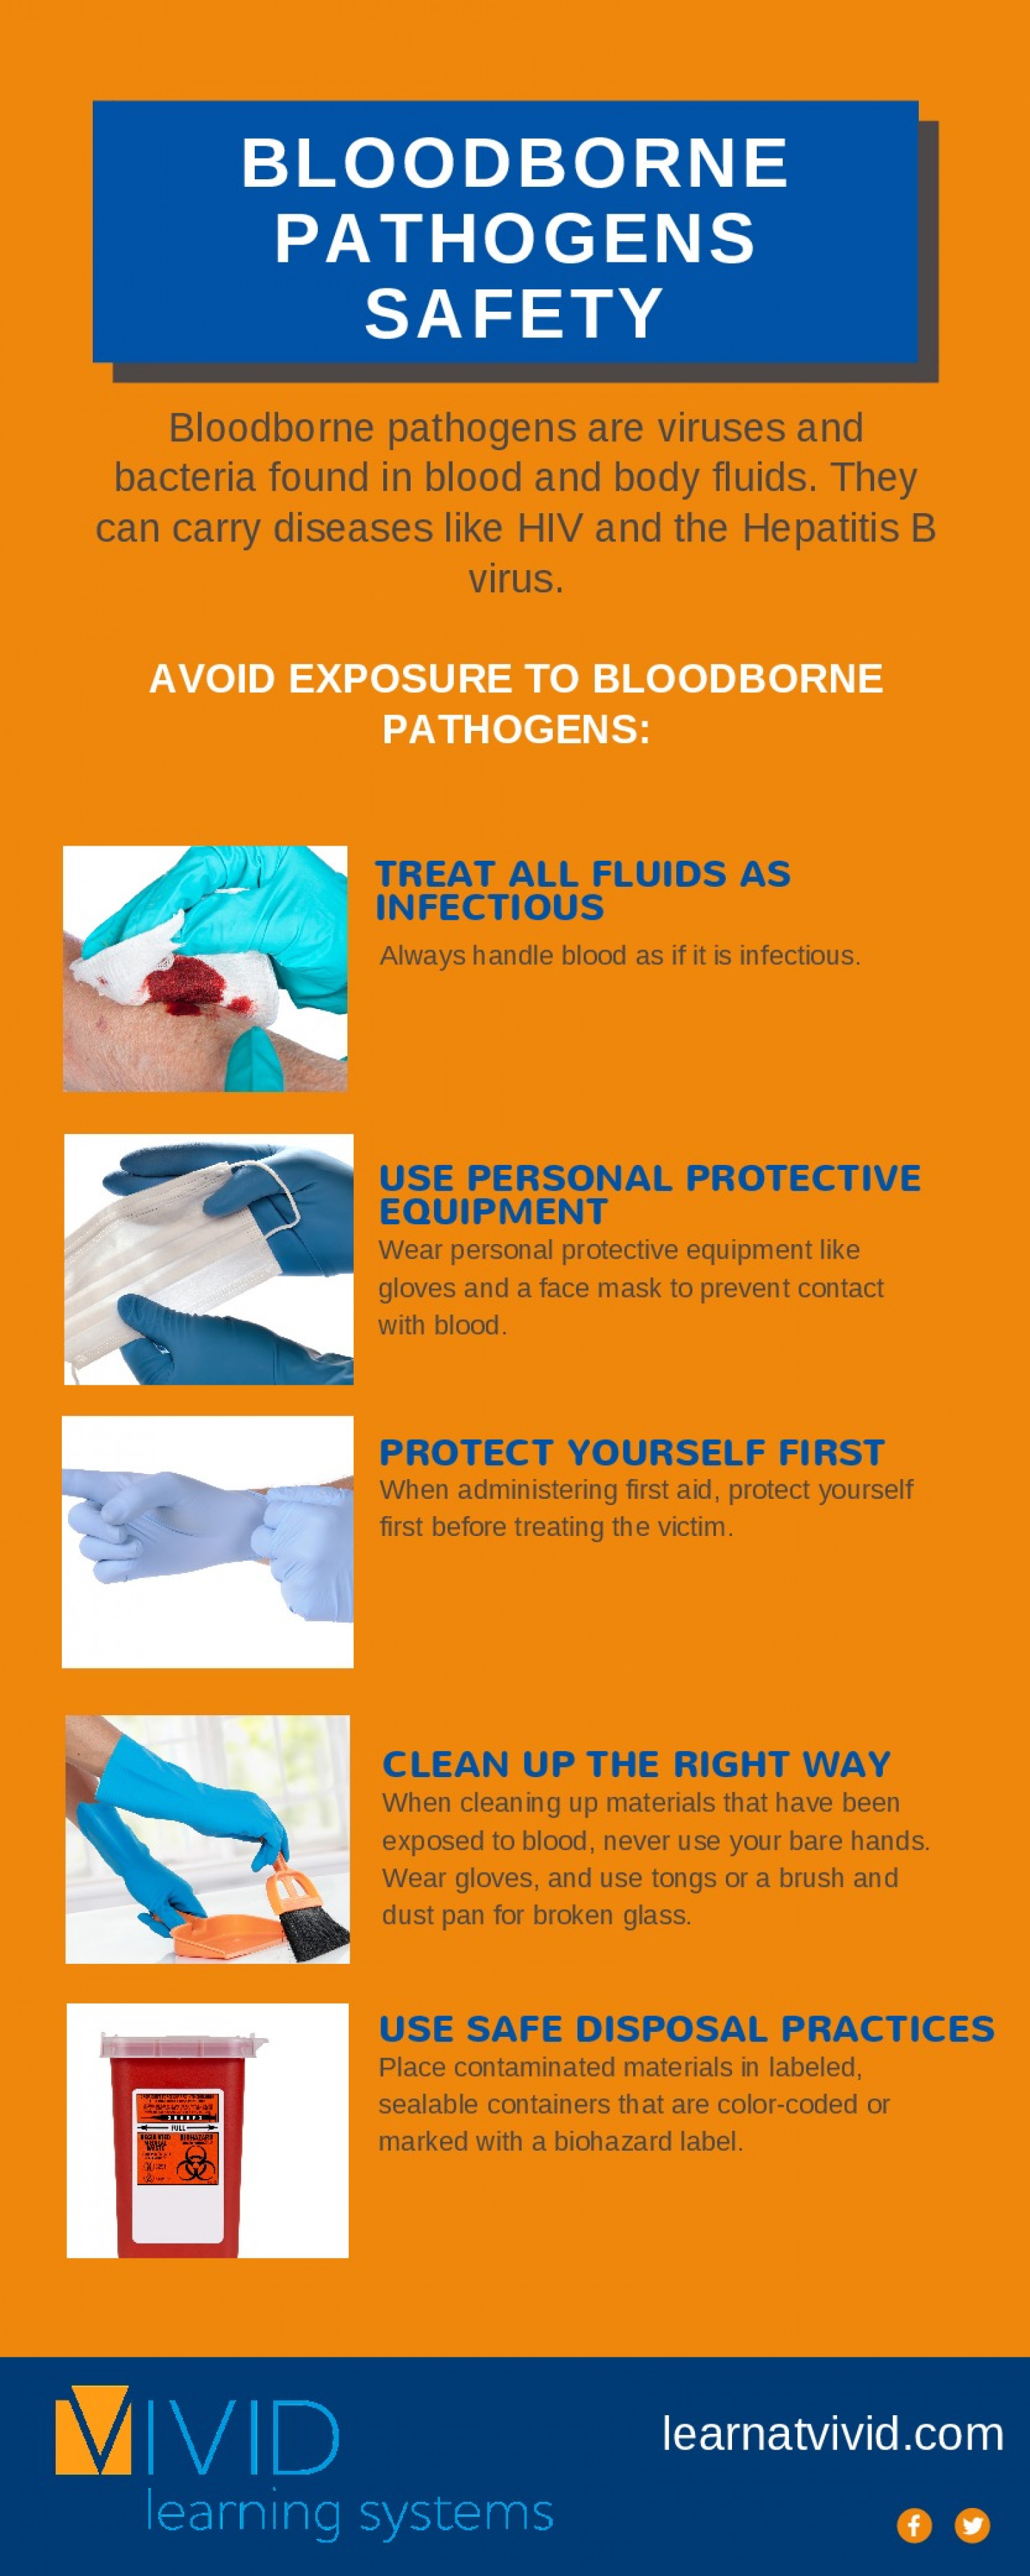 Bloodborne Pathogens Safety Infographic